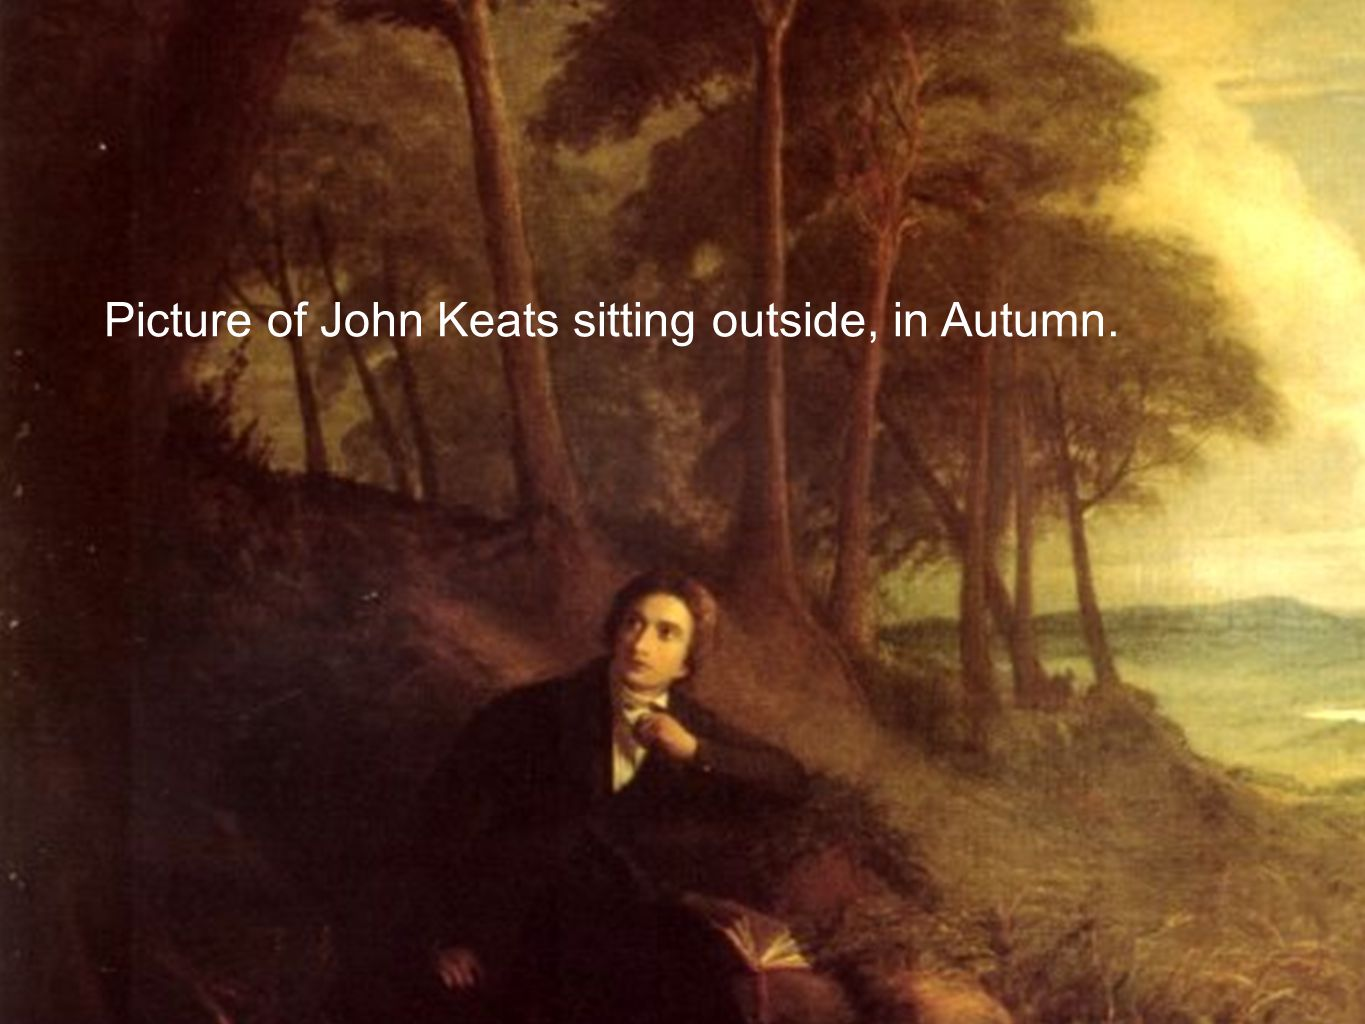 Picture of John Keats sitting outside, in Autumn.